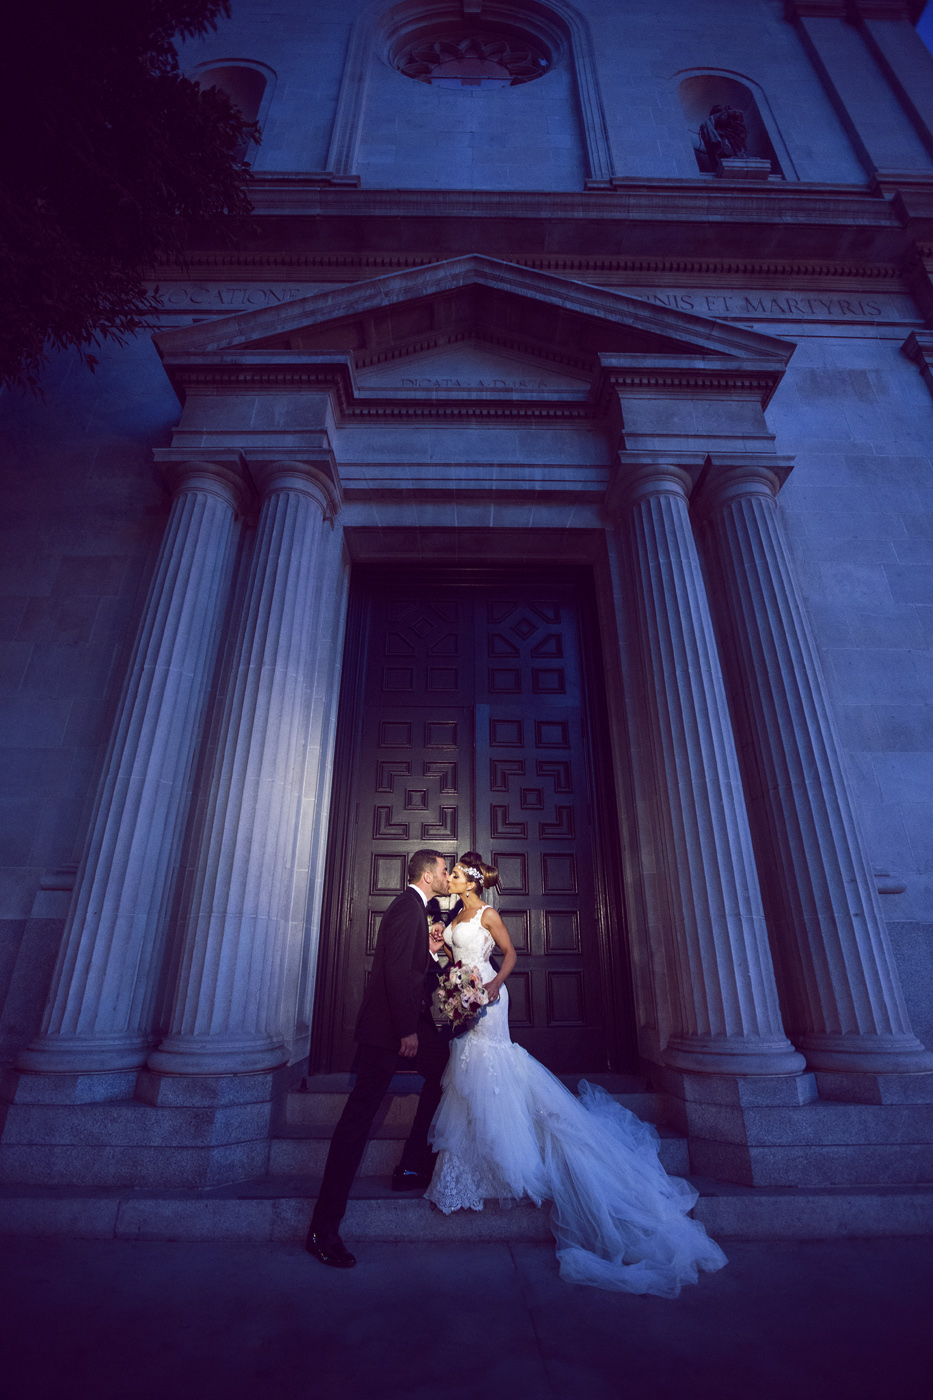 104DukePhotography_DukeImages_weddings_losangeles.jpg